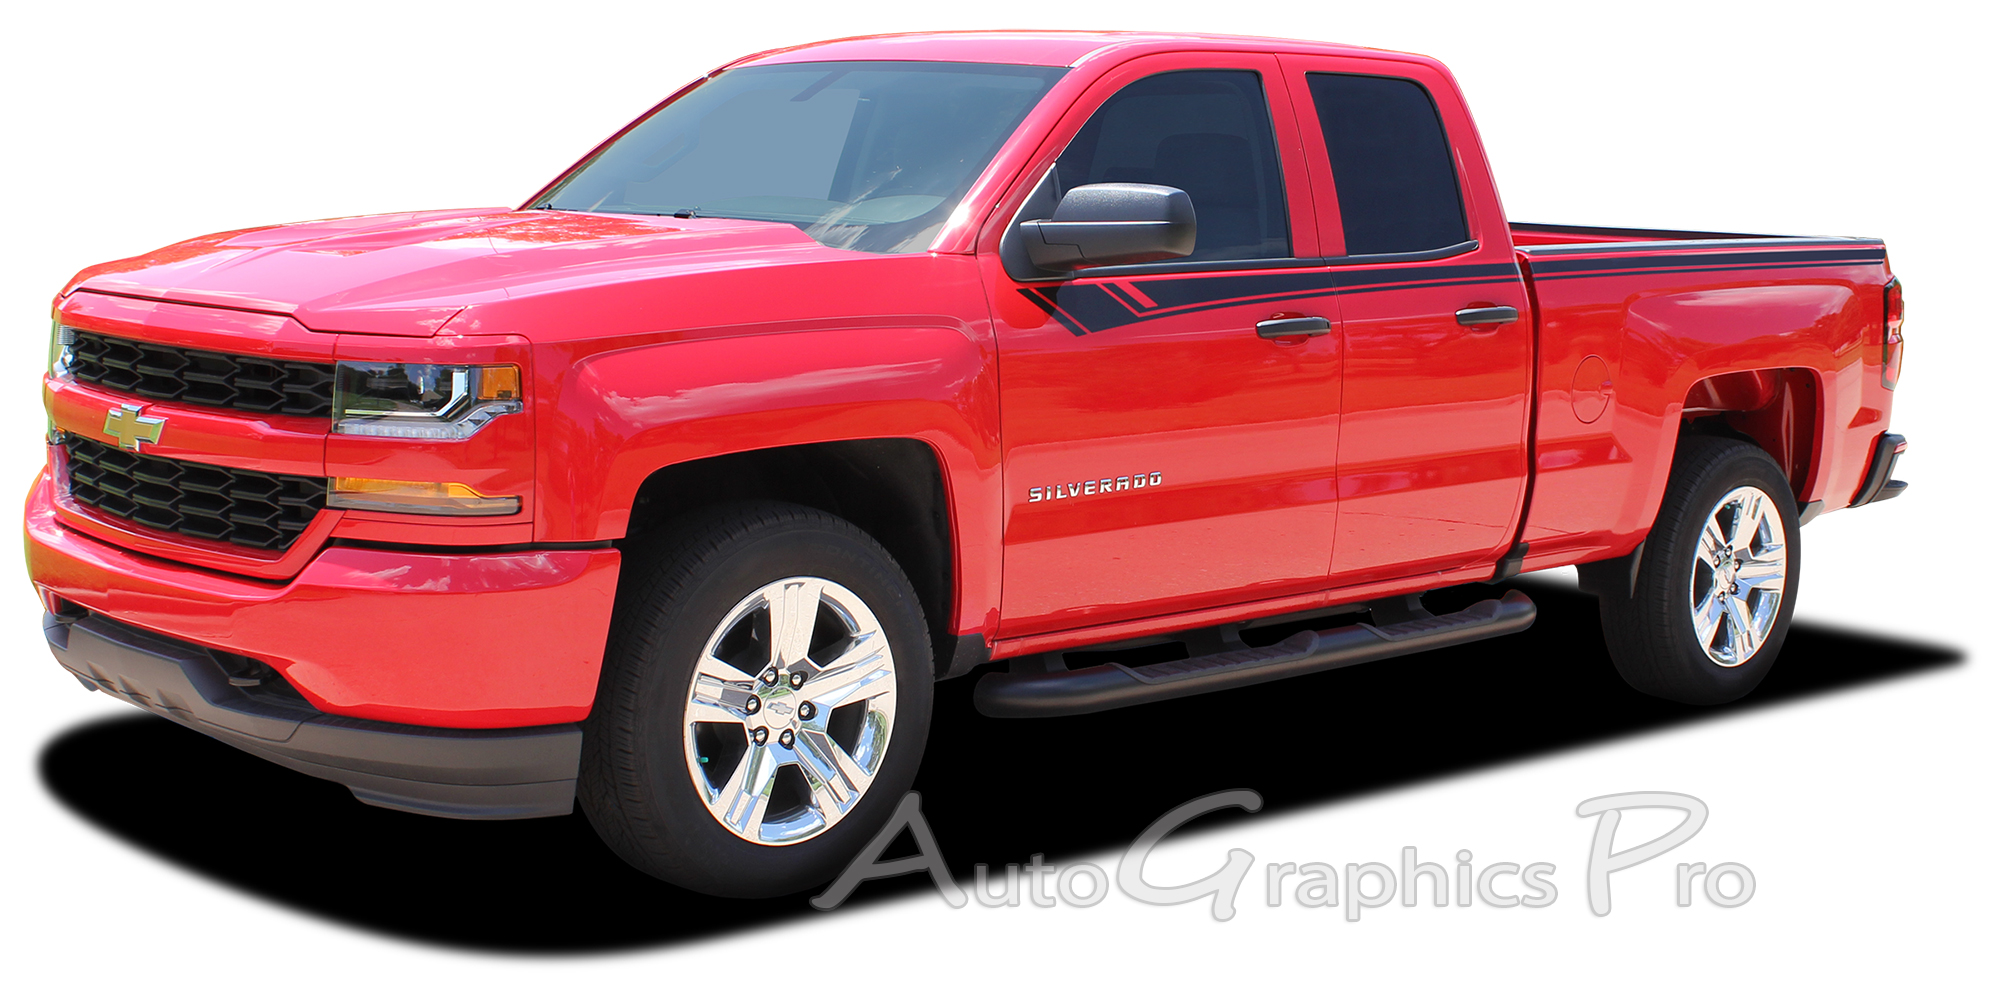 2014 chevy silverado texas edition 2017 2018 best cars reviews. Black Bedroom Furniture Sets. Home Design Ideas